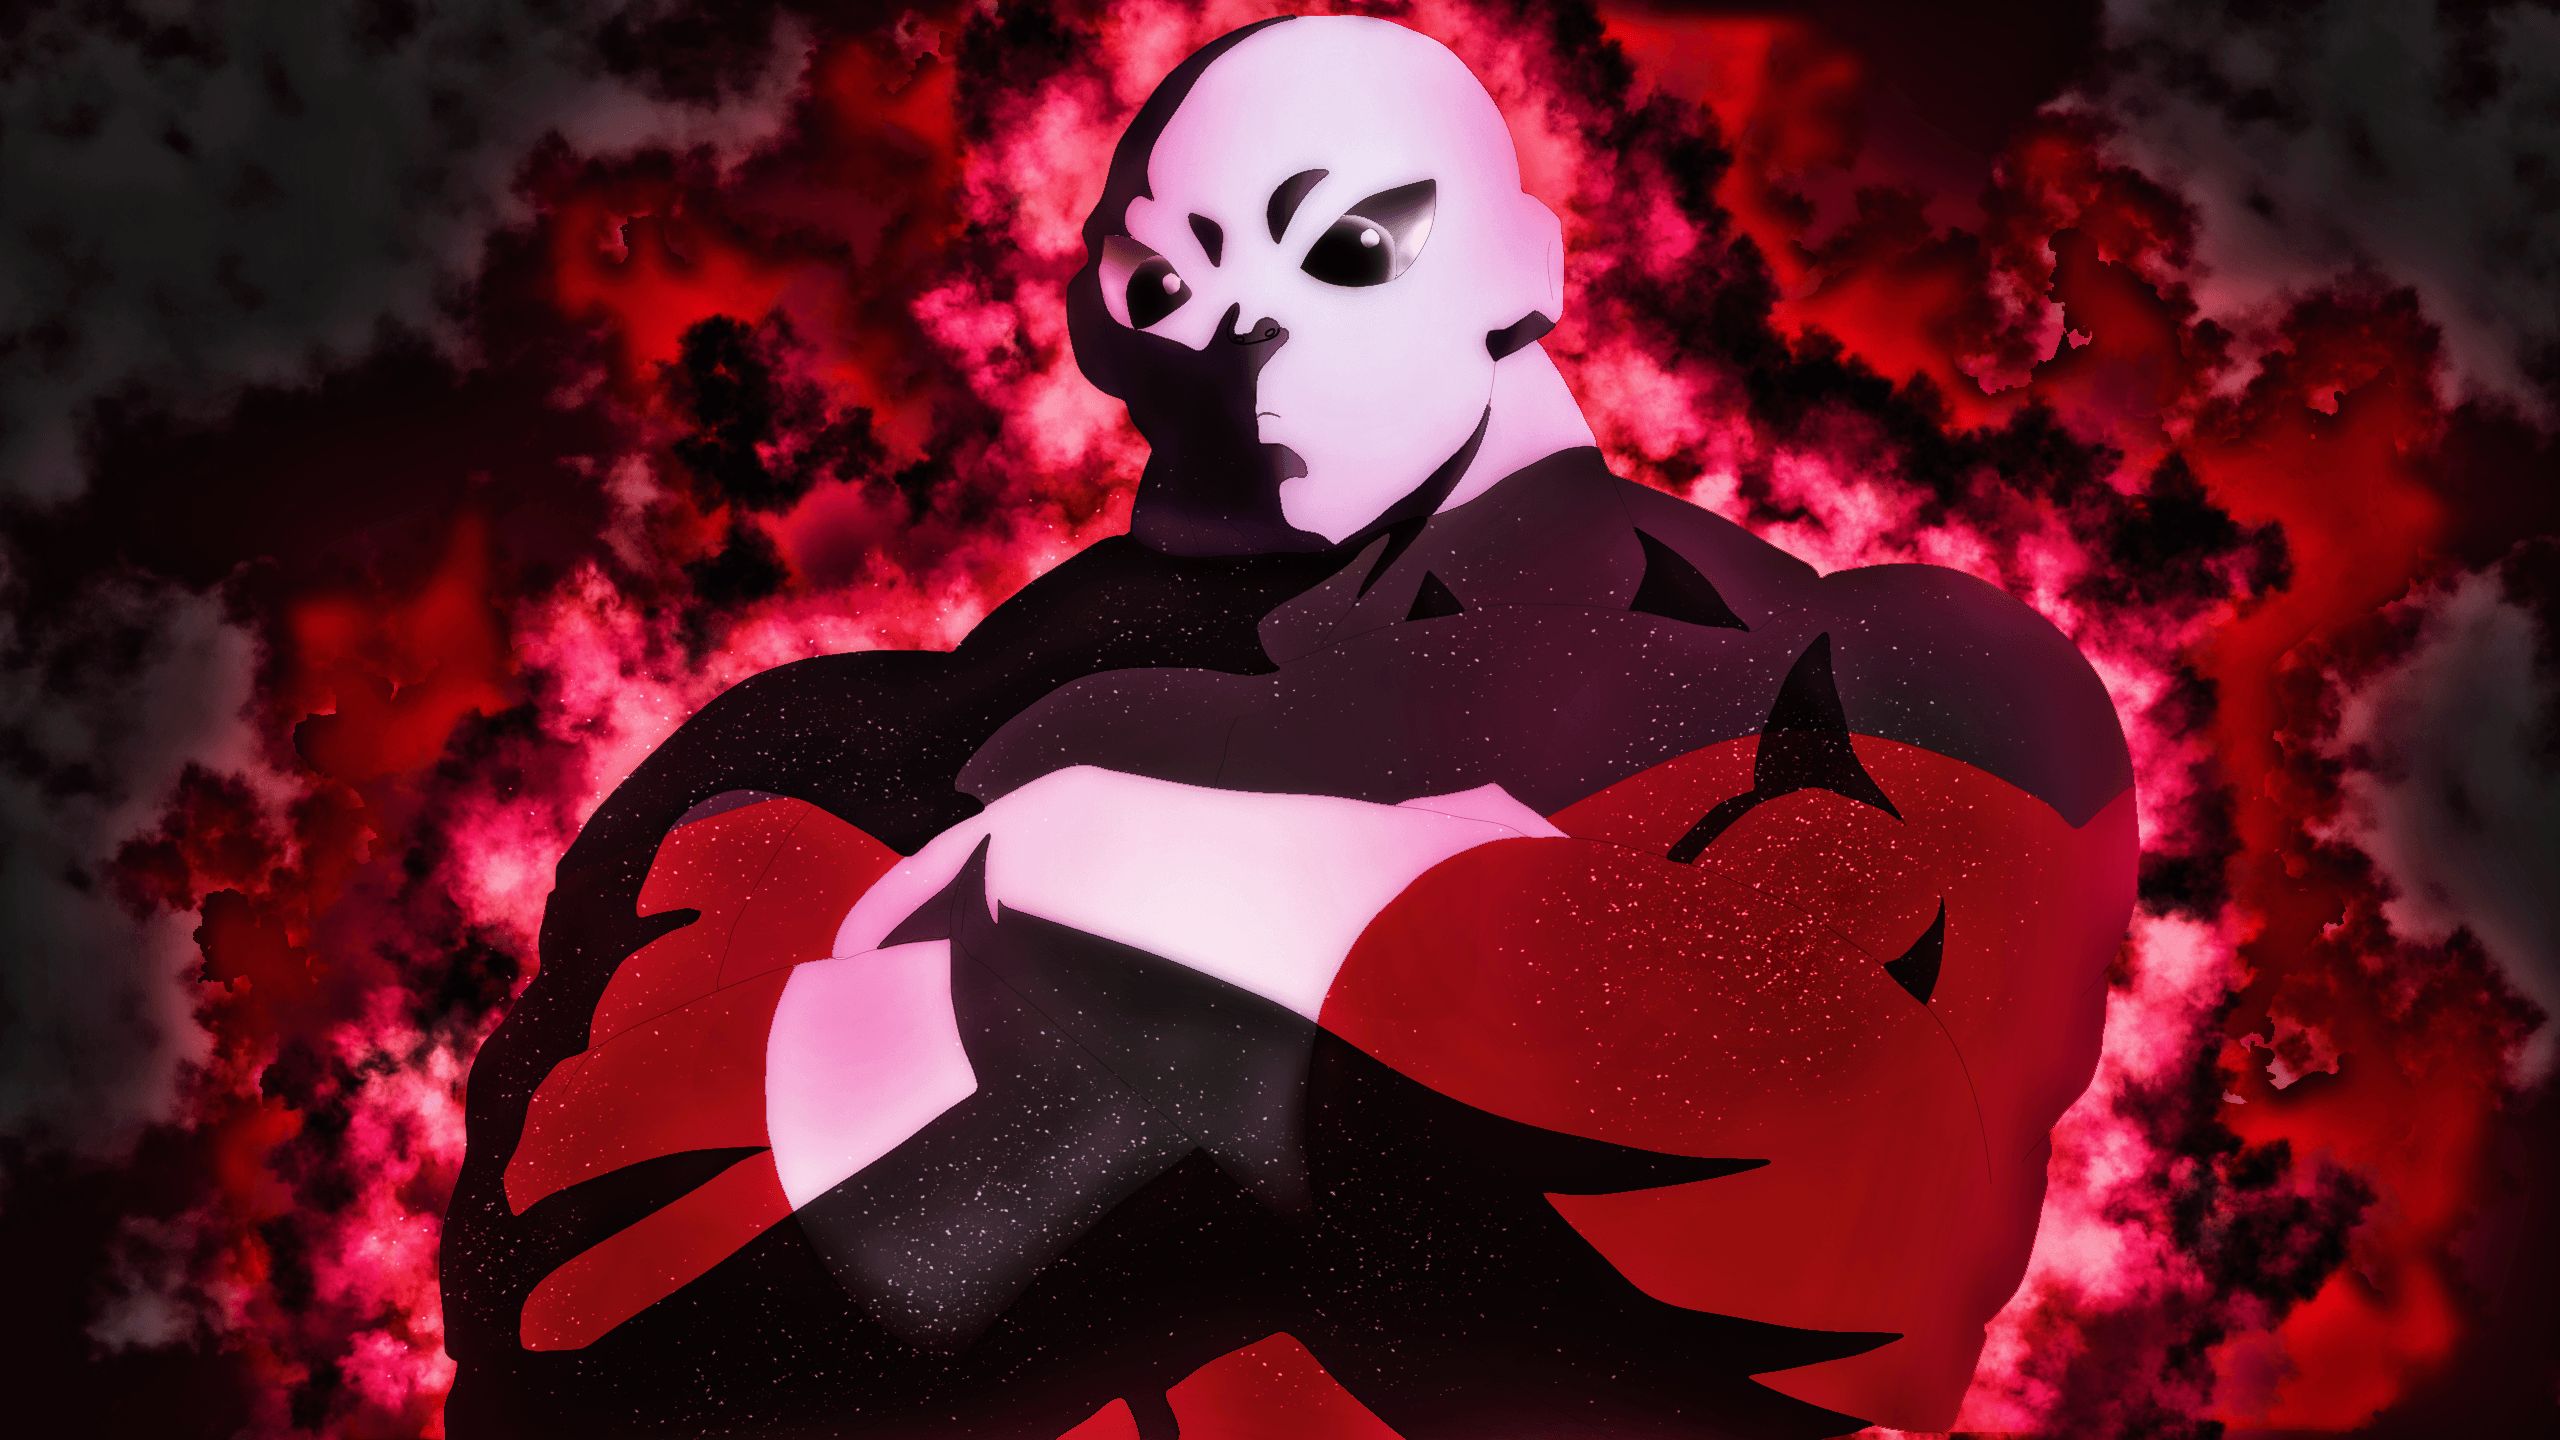 Dbs Jiren Wallpapers Top Free Dbs Jiren Backgrounds